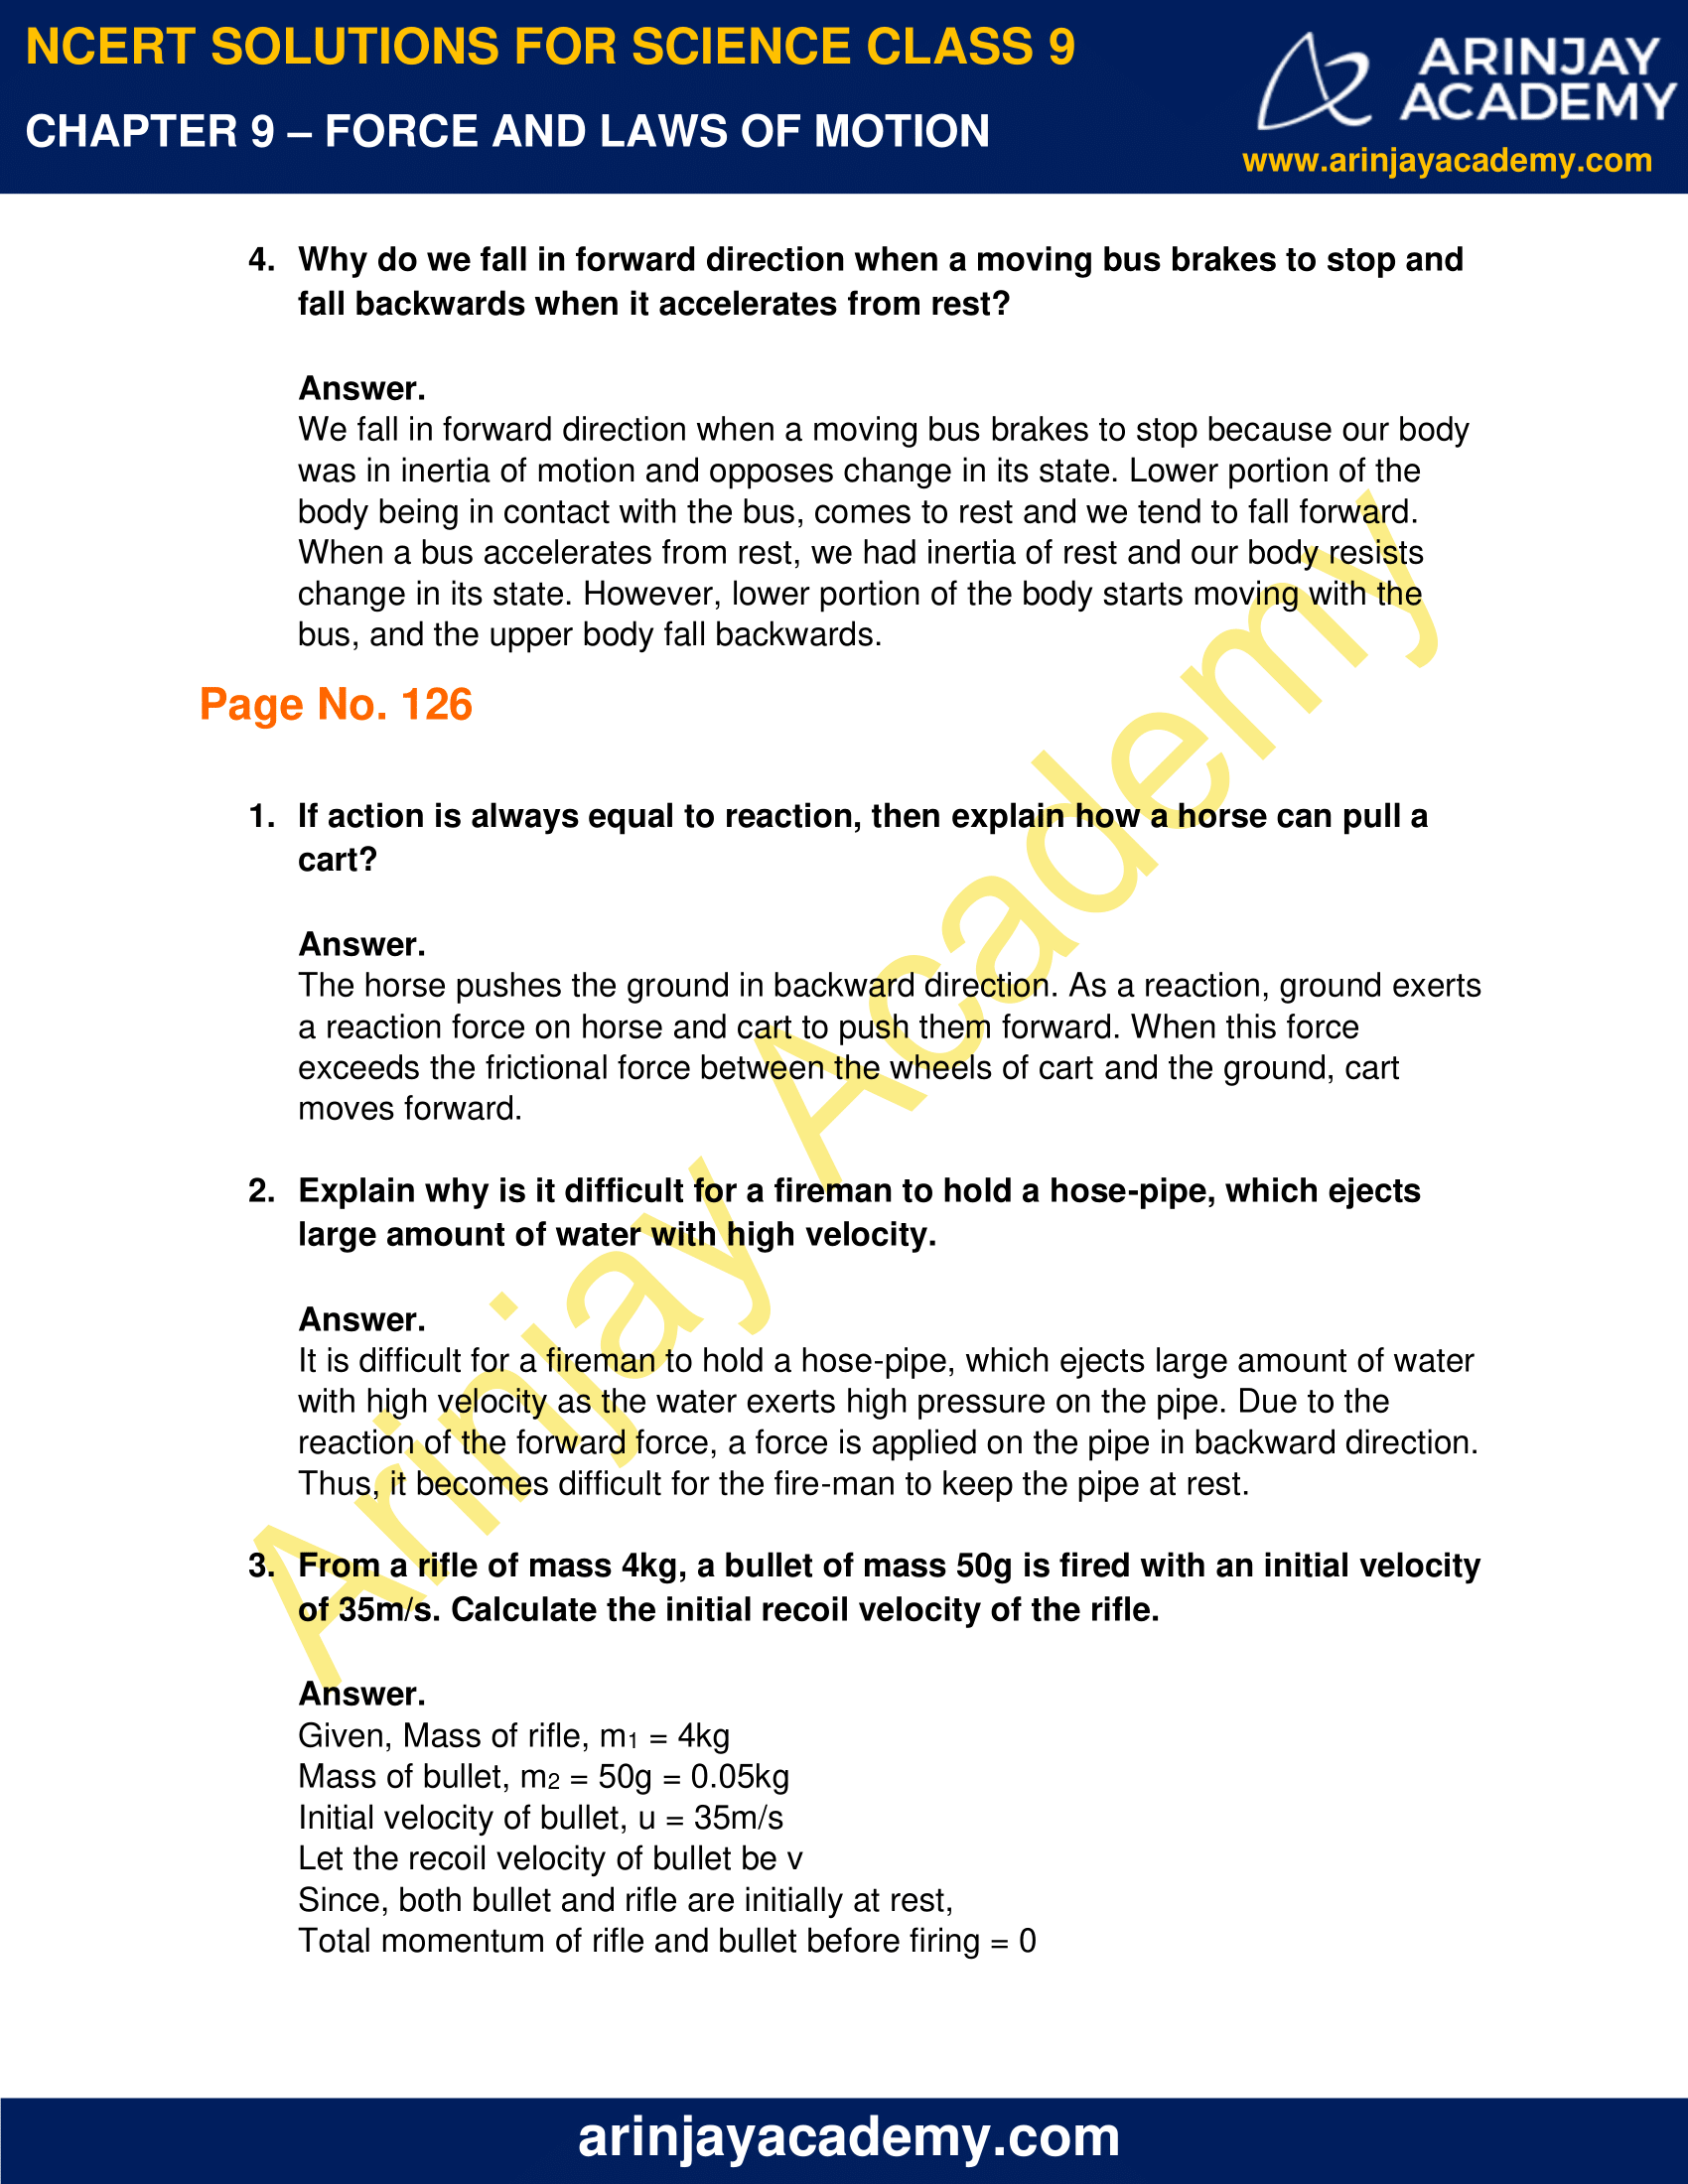 NCERT Solutions for Class 9 Science Chapter 9 - Force and Laws of Motion image 2